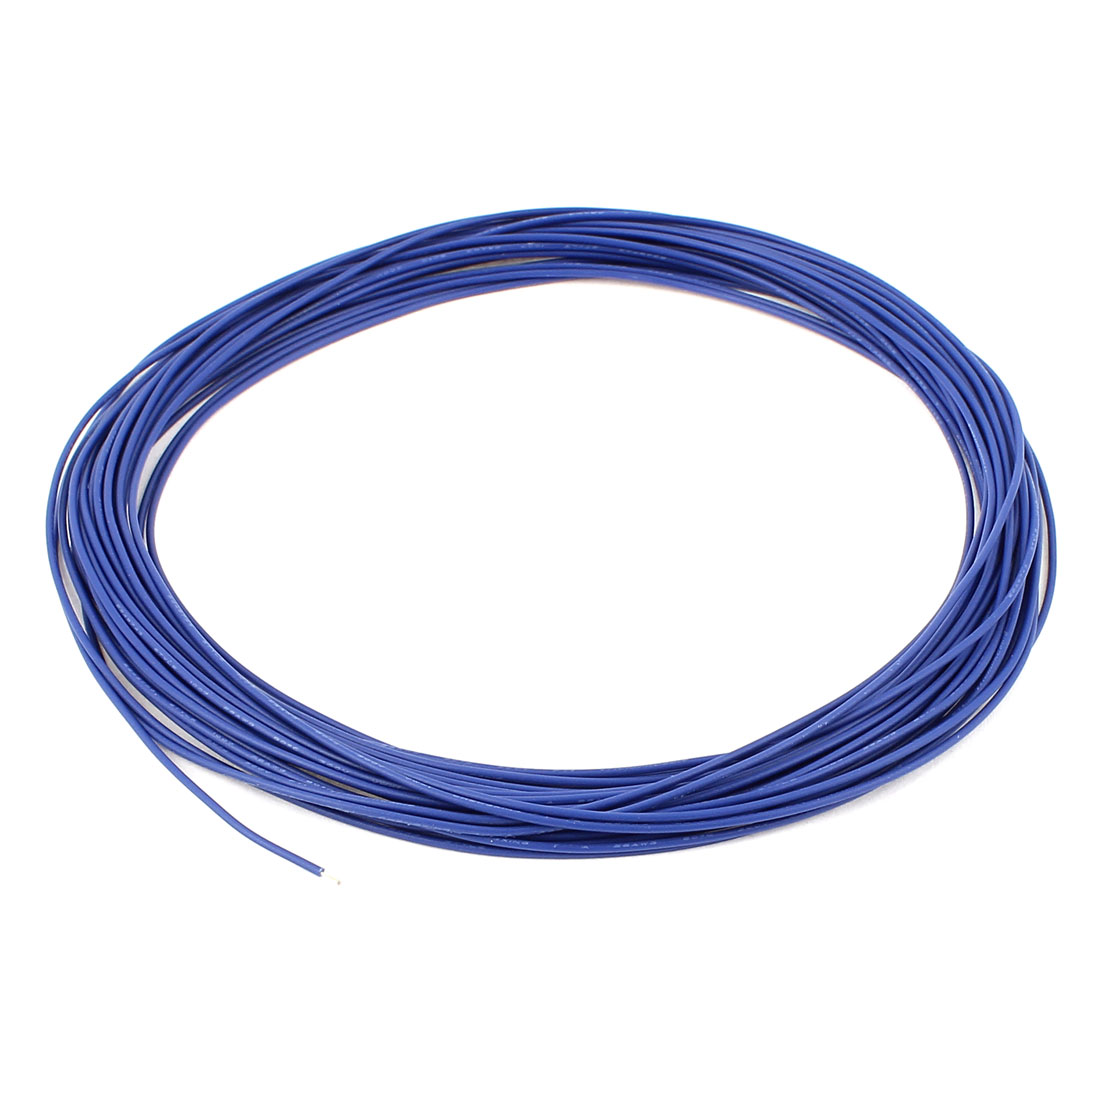 28AWG Tin Plated Stranded Wires UL-1007 Electronic Wire Cable 10M Blue